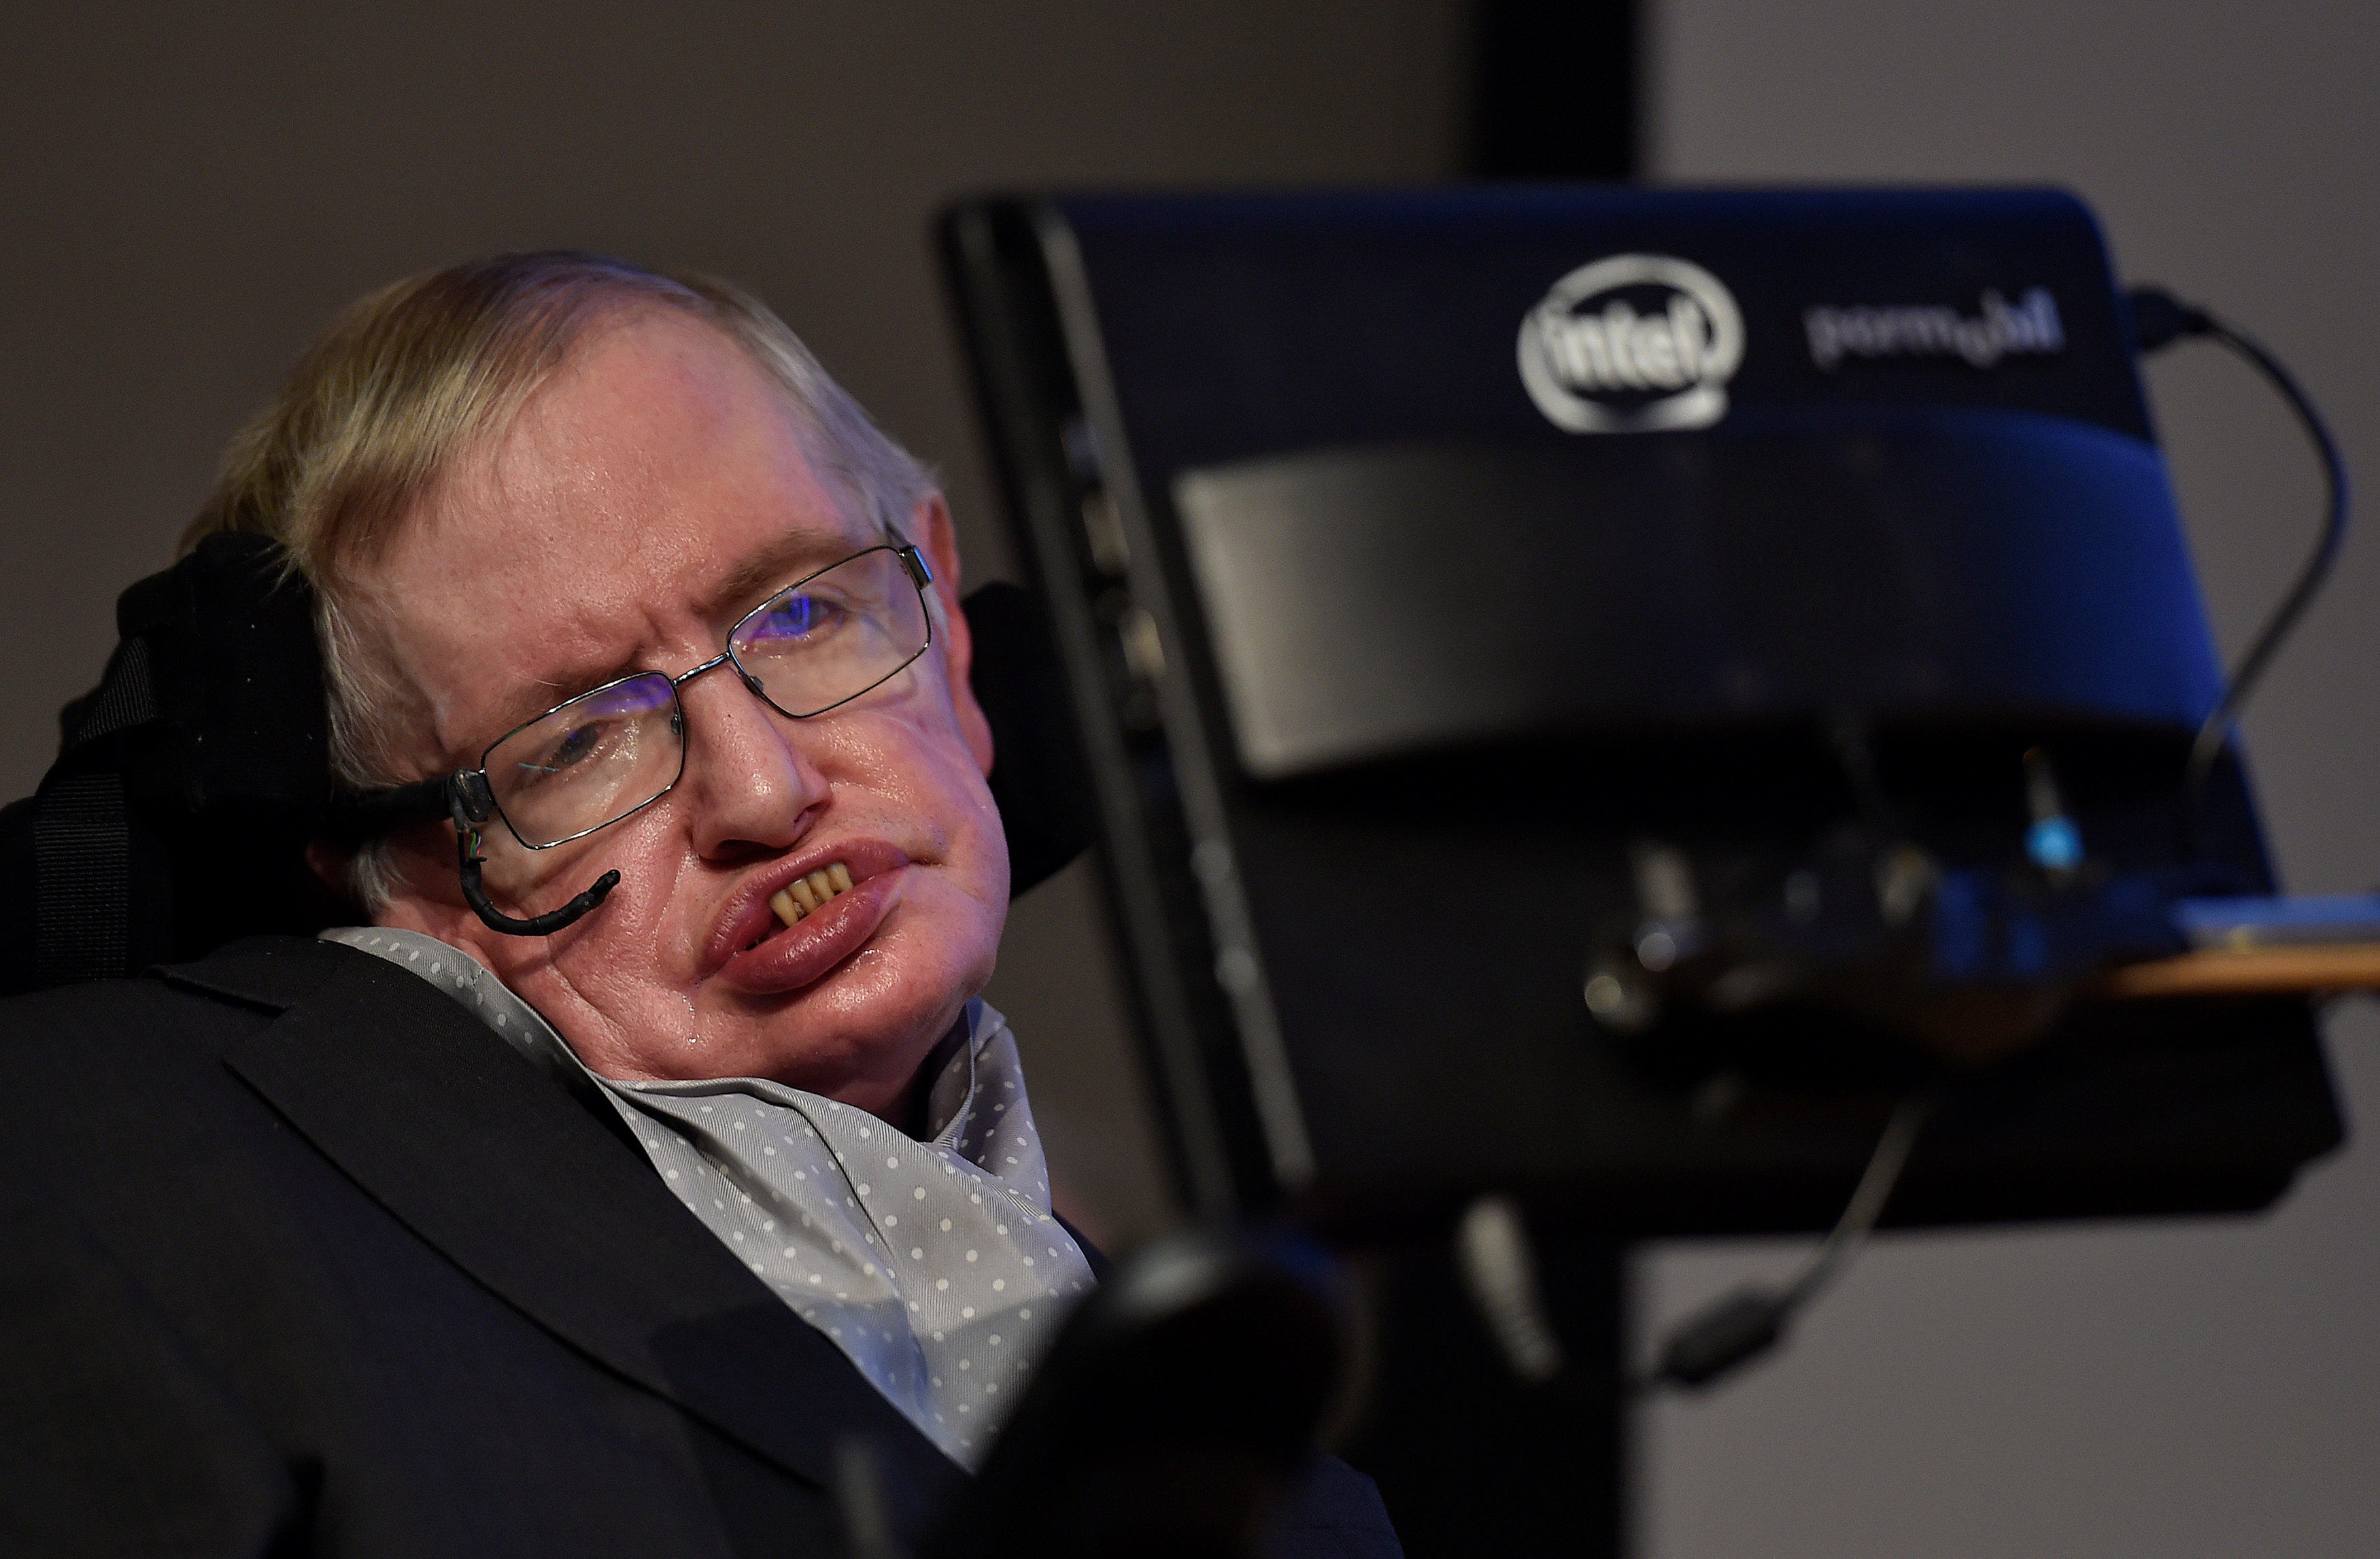 stephen hawking cambridge professor and theoretical physicist dead